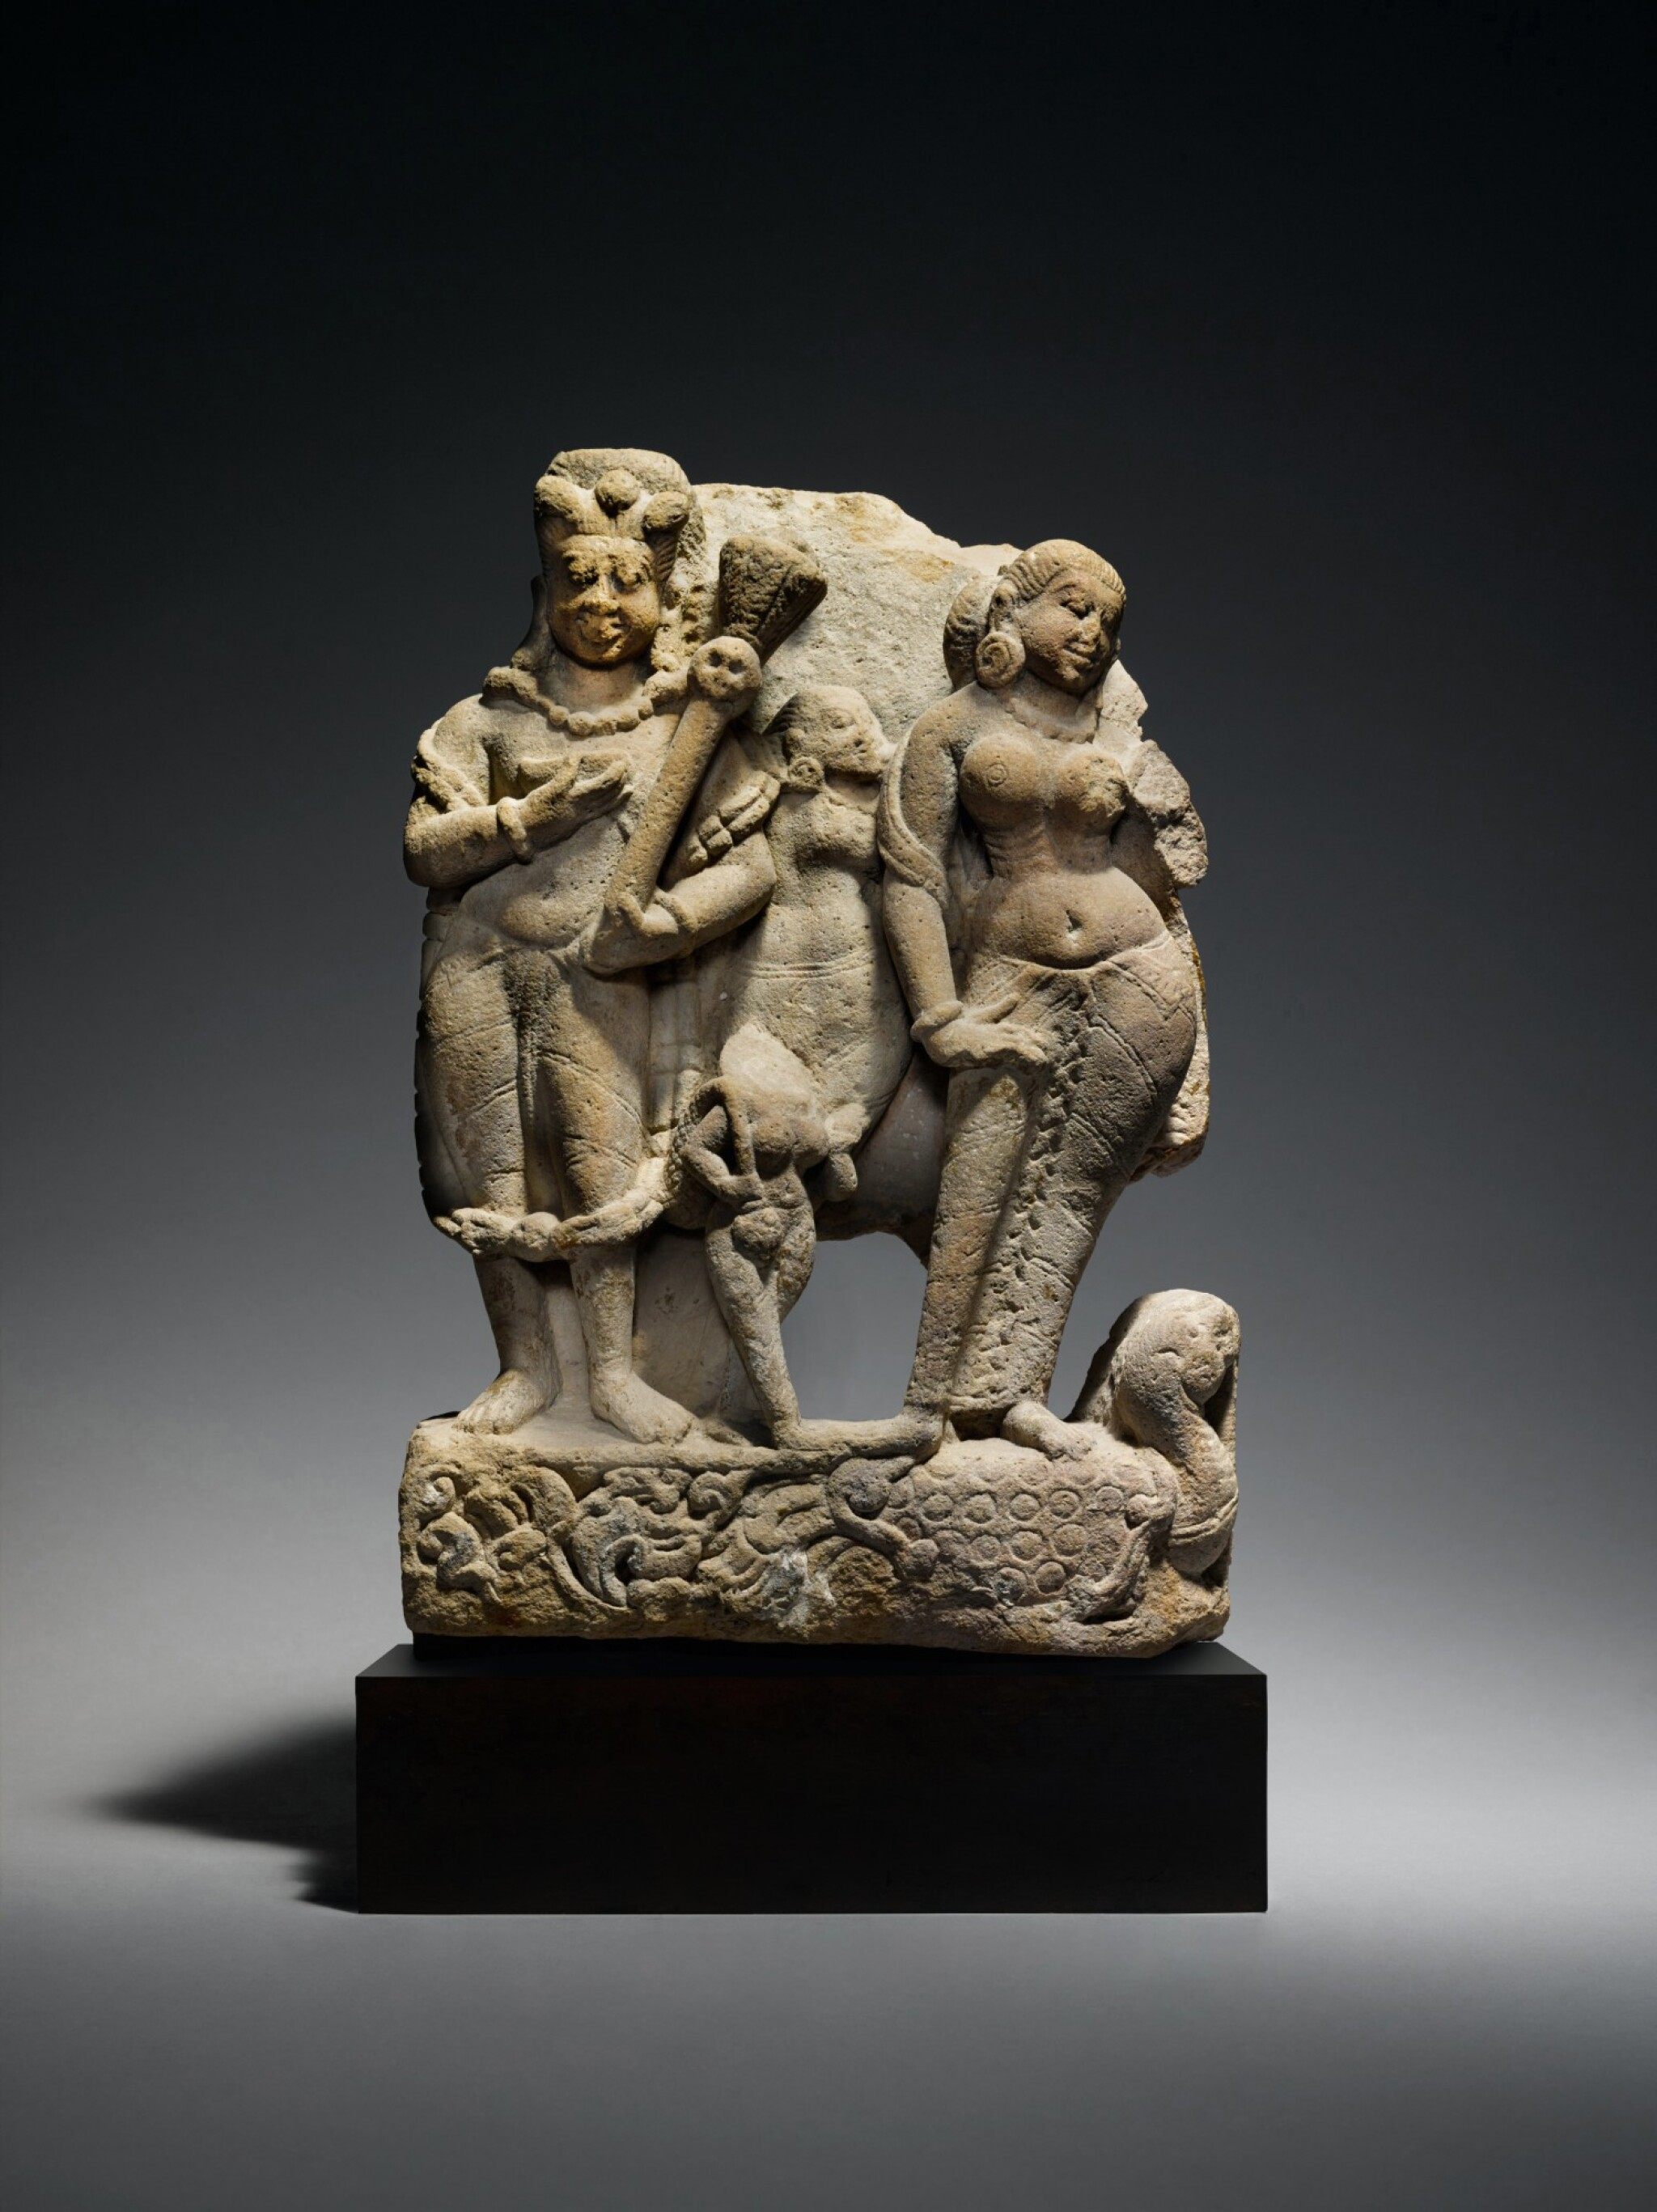 View full screen - View 1 of Lot 360. A Sandstone Group of Shiva as Bhairava with River Goddess Ganga, Central India, 8th/9th Century.